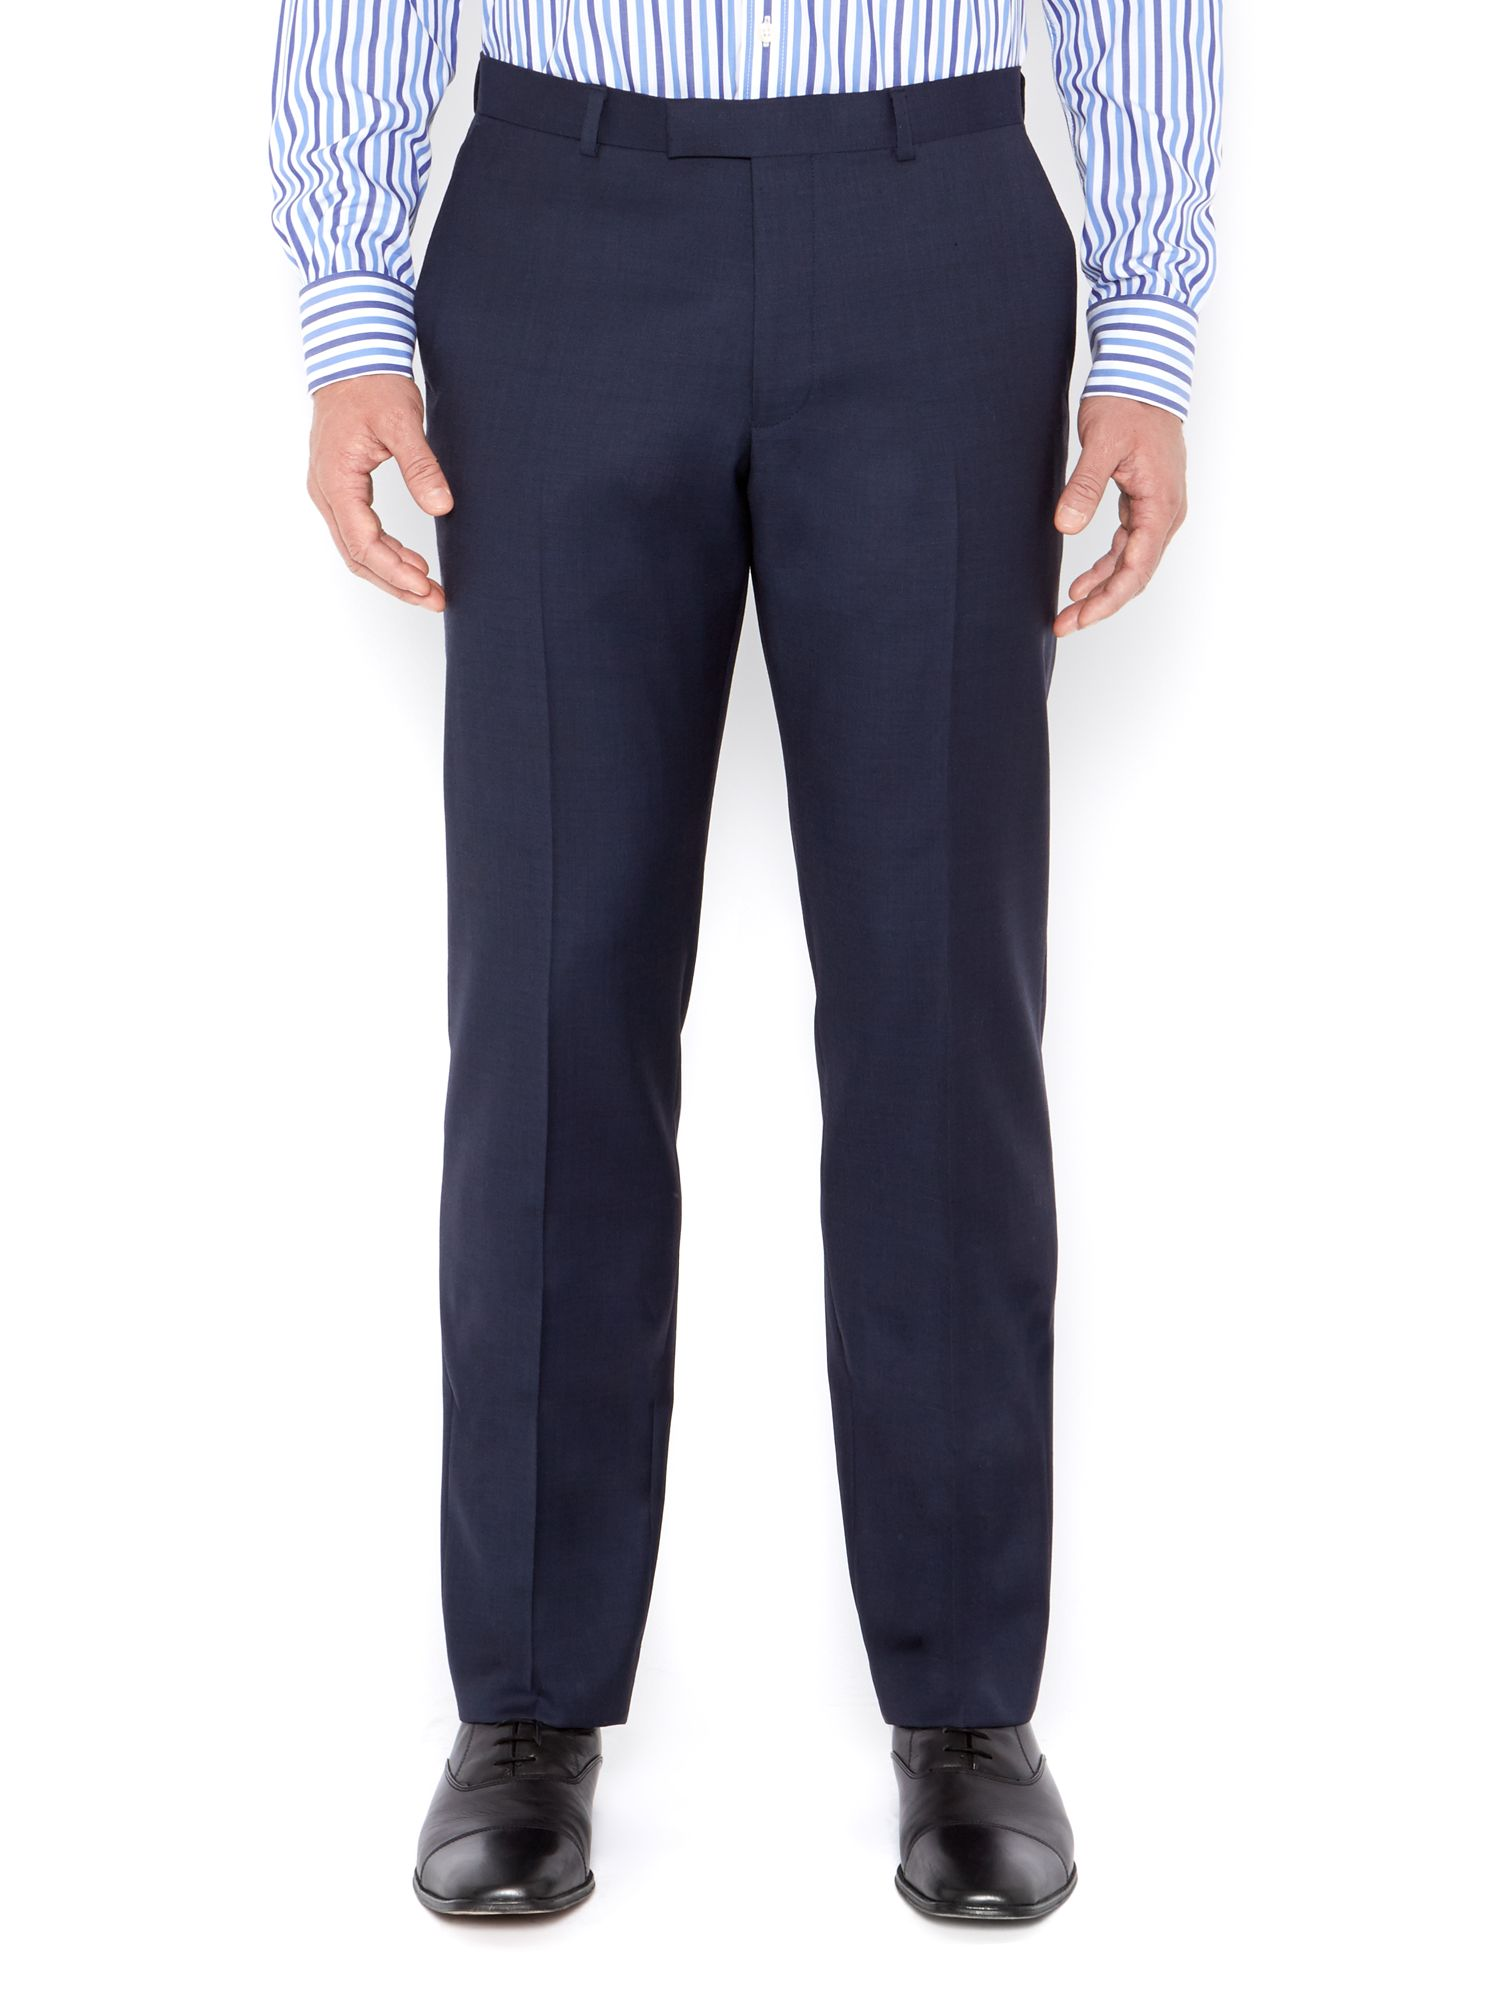 Bexley Sharkskin Suit Trouser